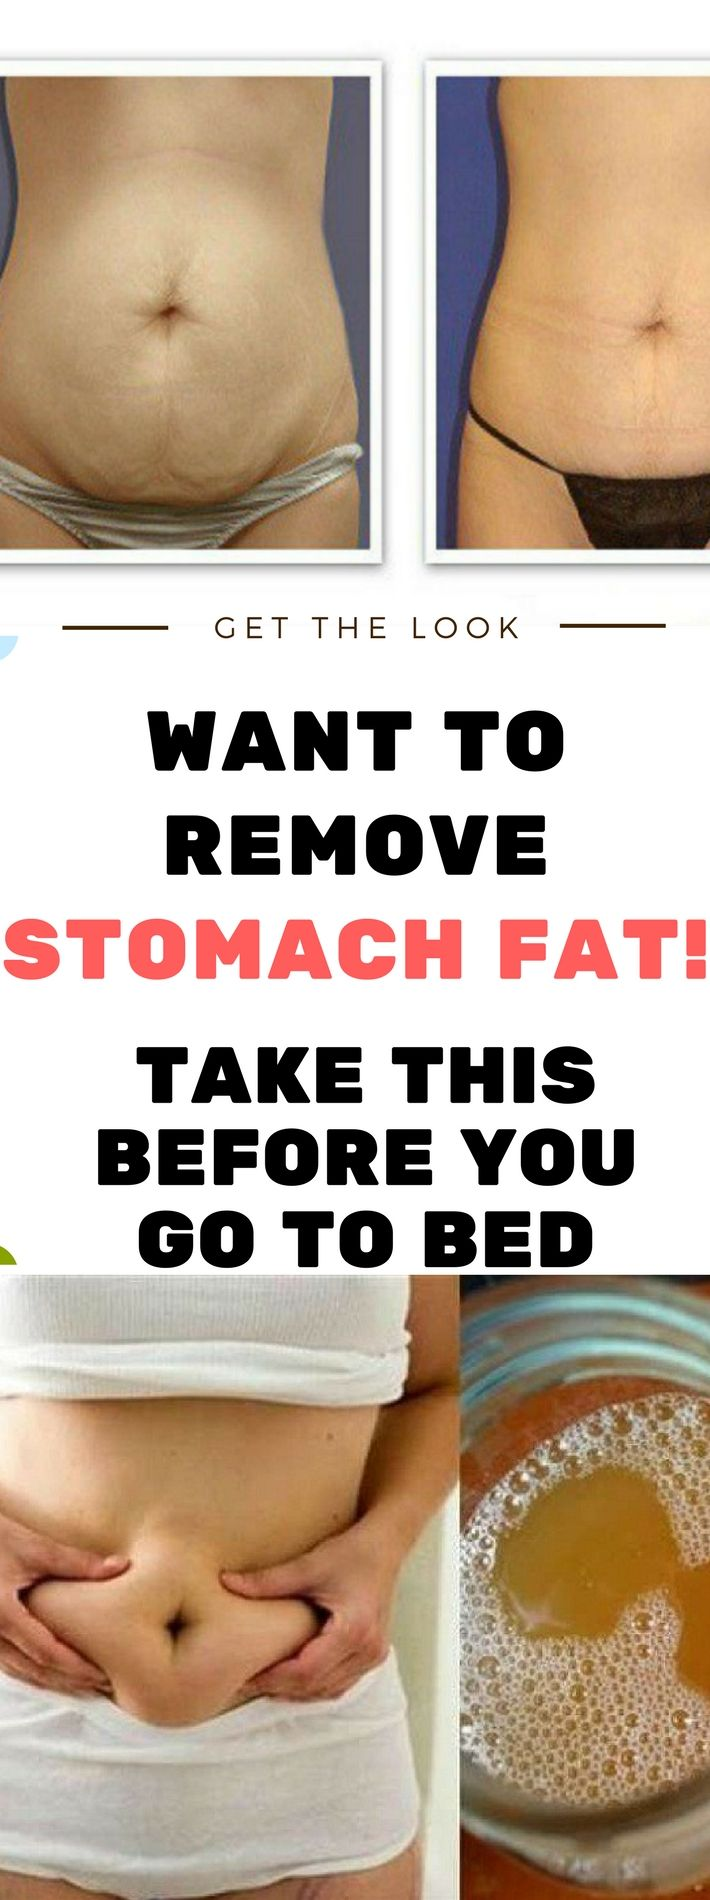 WANT TO REMOVE STOMACH FAT! -TAKE THIS BEFORE YOU GO TO BED!!! Need to know. Read this. Amazing !!!